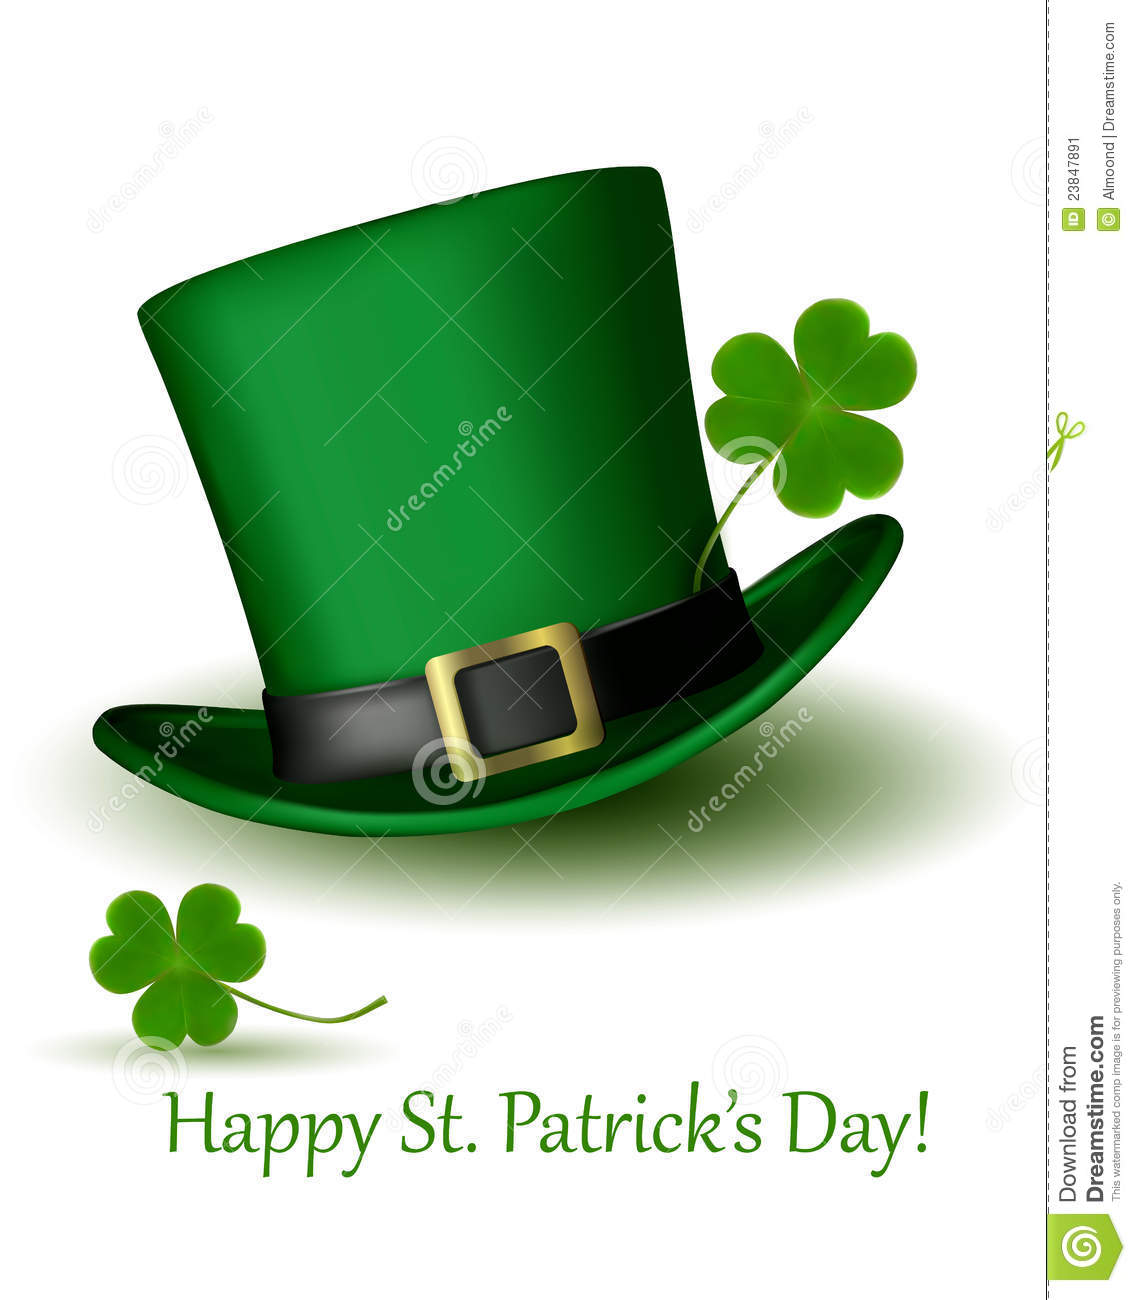 St Patrick Day Hat With Clover Vector Stock Image - Image: 23847891